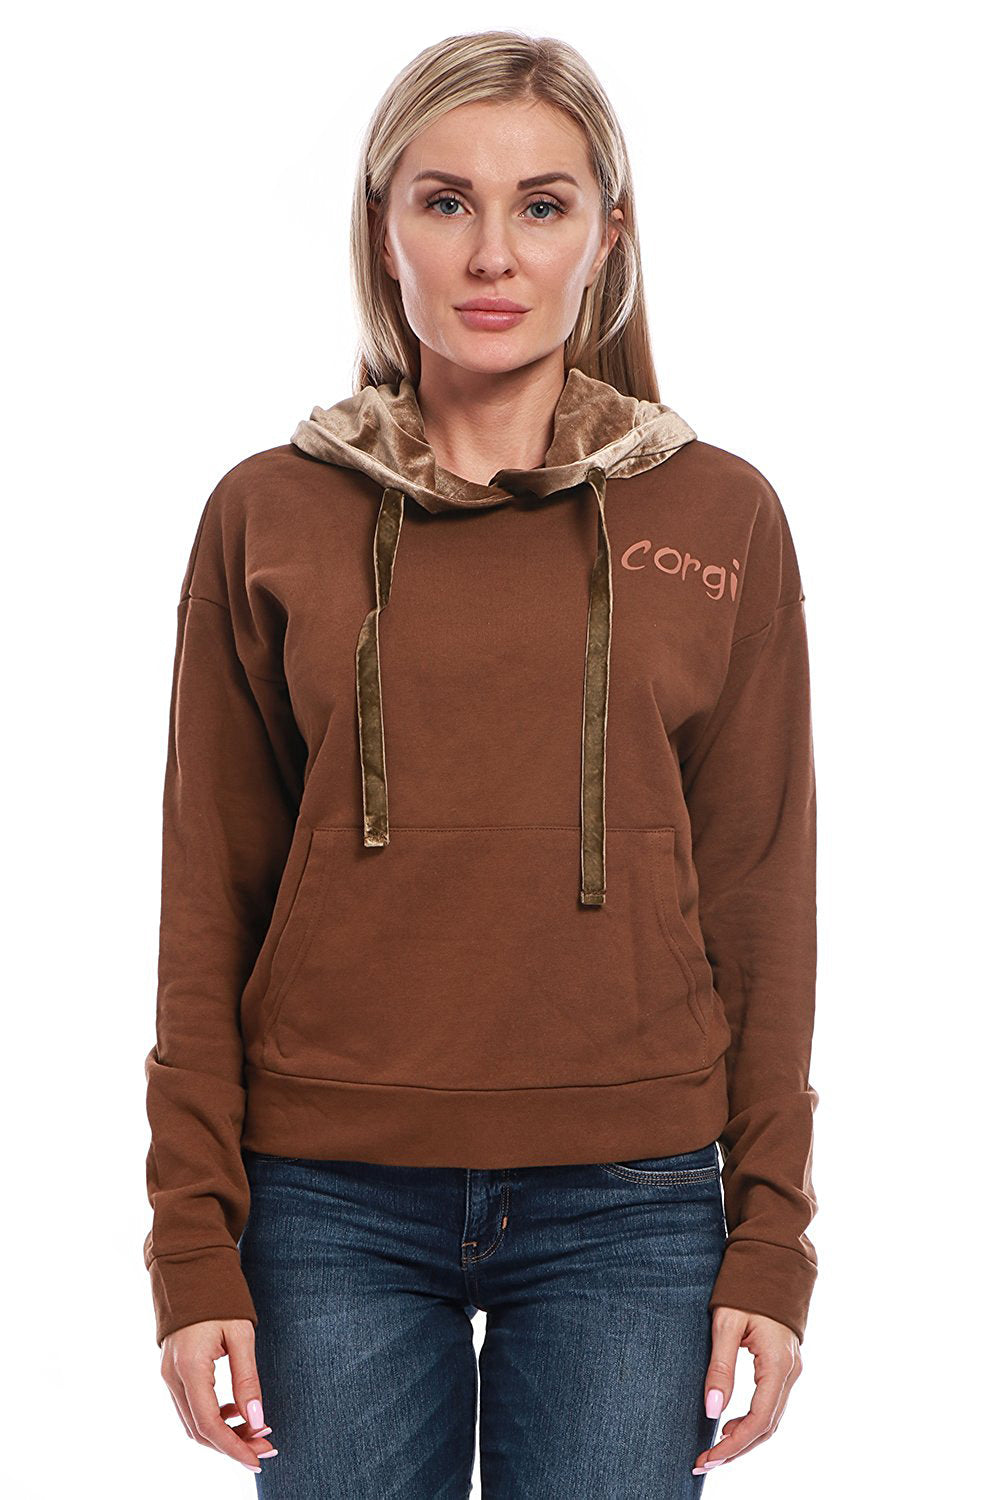 Cotton Hooded Corgi Sweatshirt with Velvet Hood